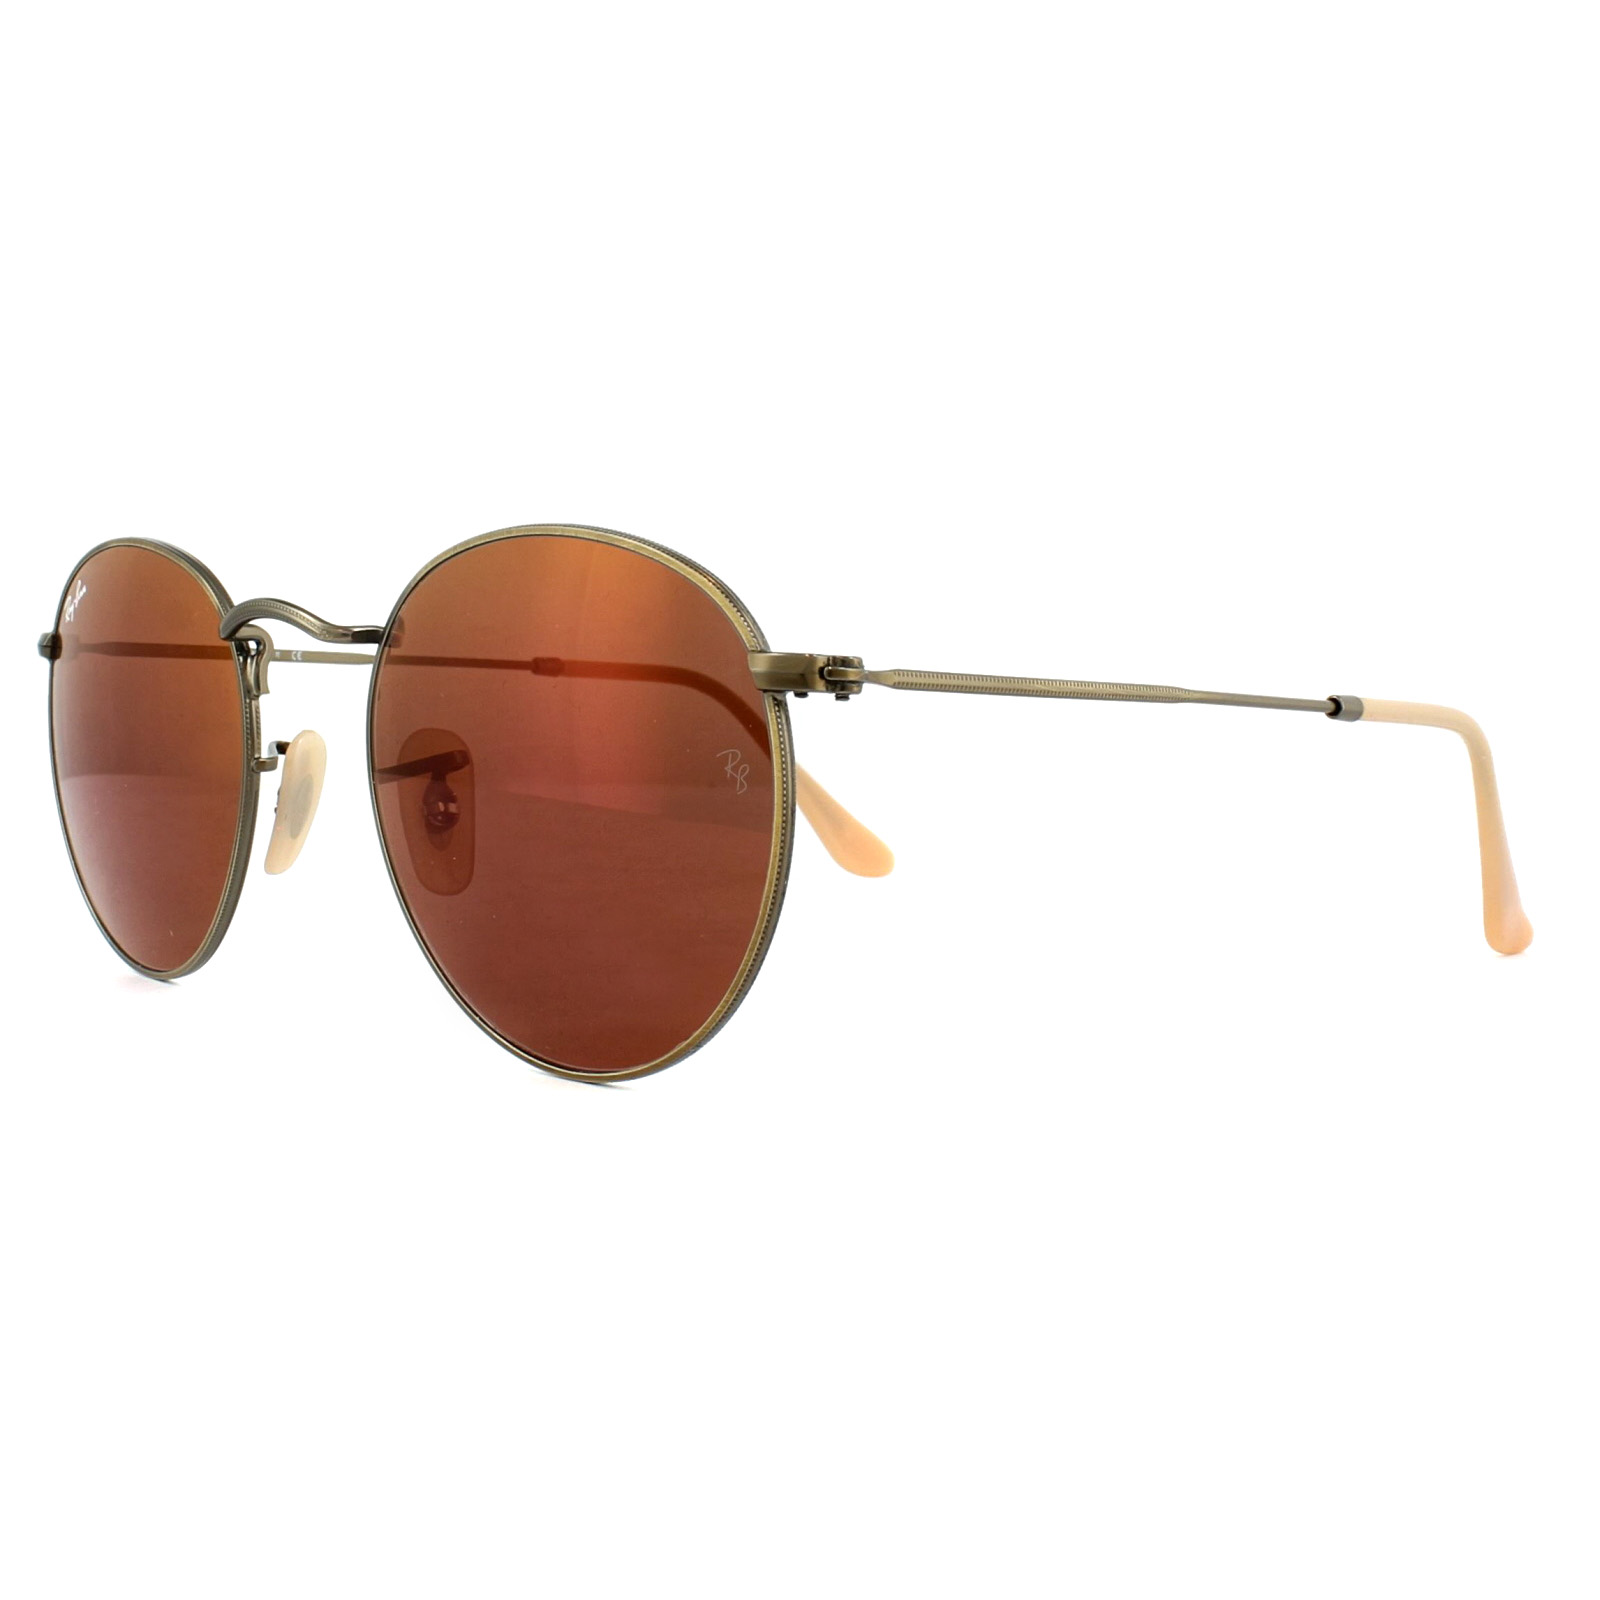 335d57e92fc71 ... italy sentinel ray ban sunglasses round metal 3447 167 2k brushed  bronze red mirror 50mm fd486